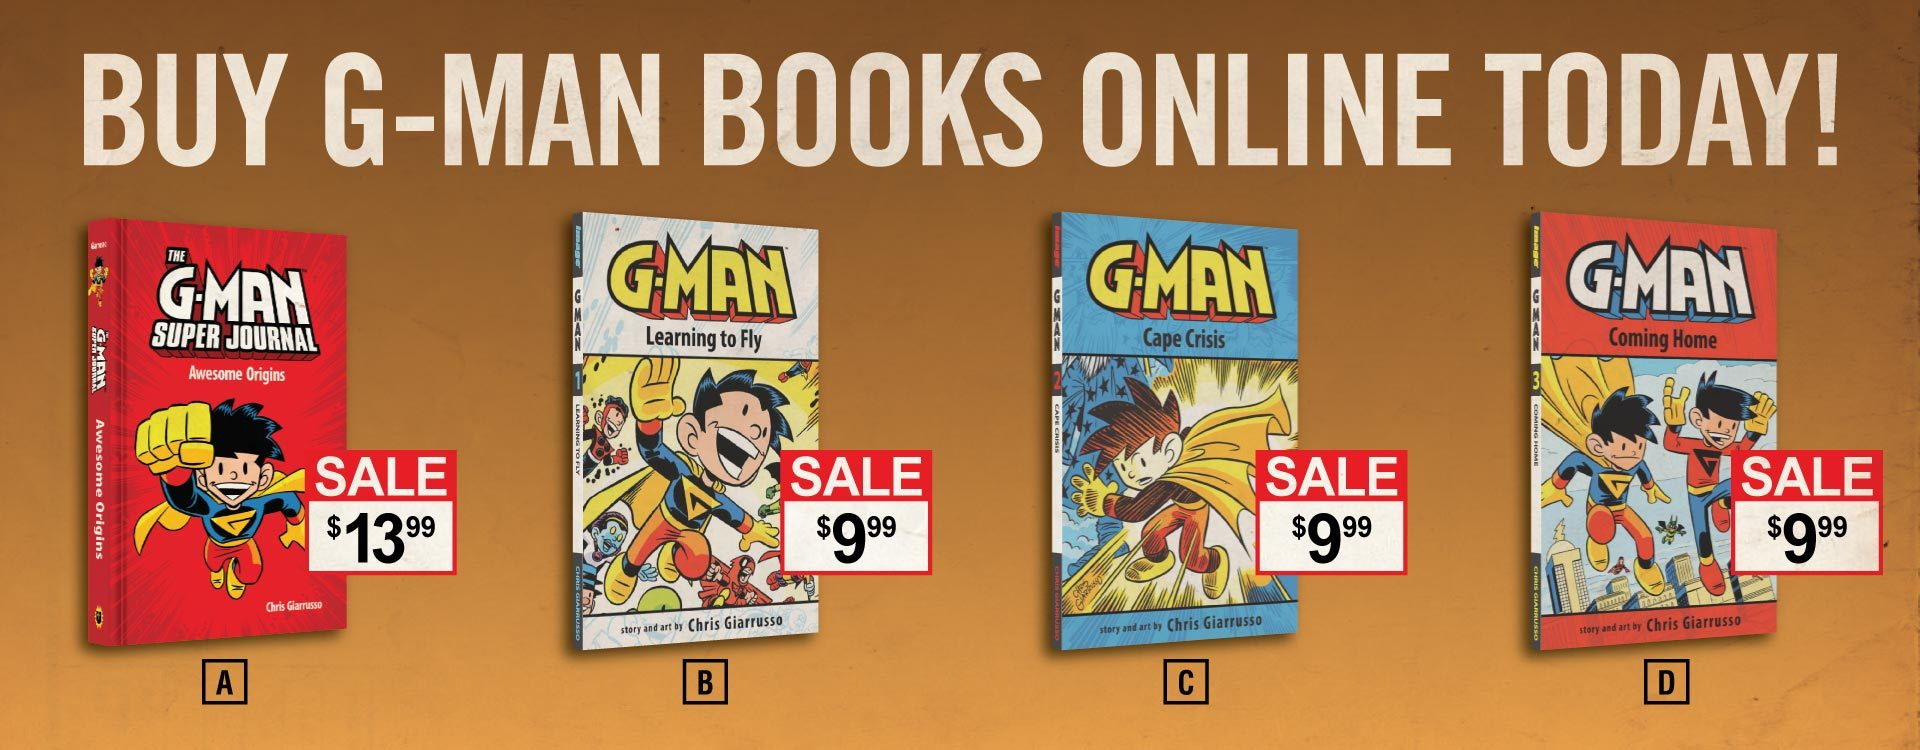 Buy G-Man books online today!